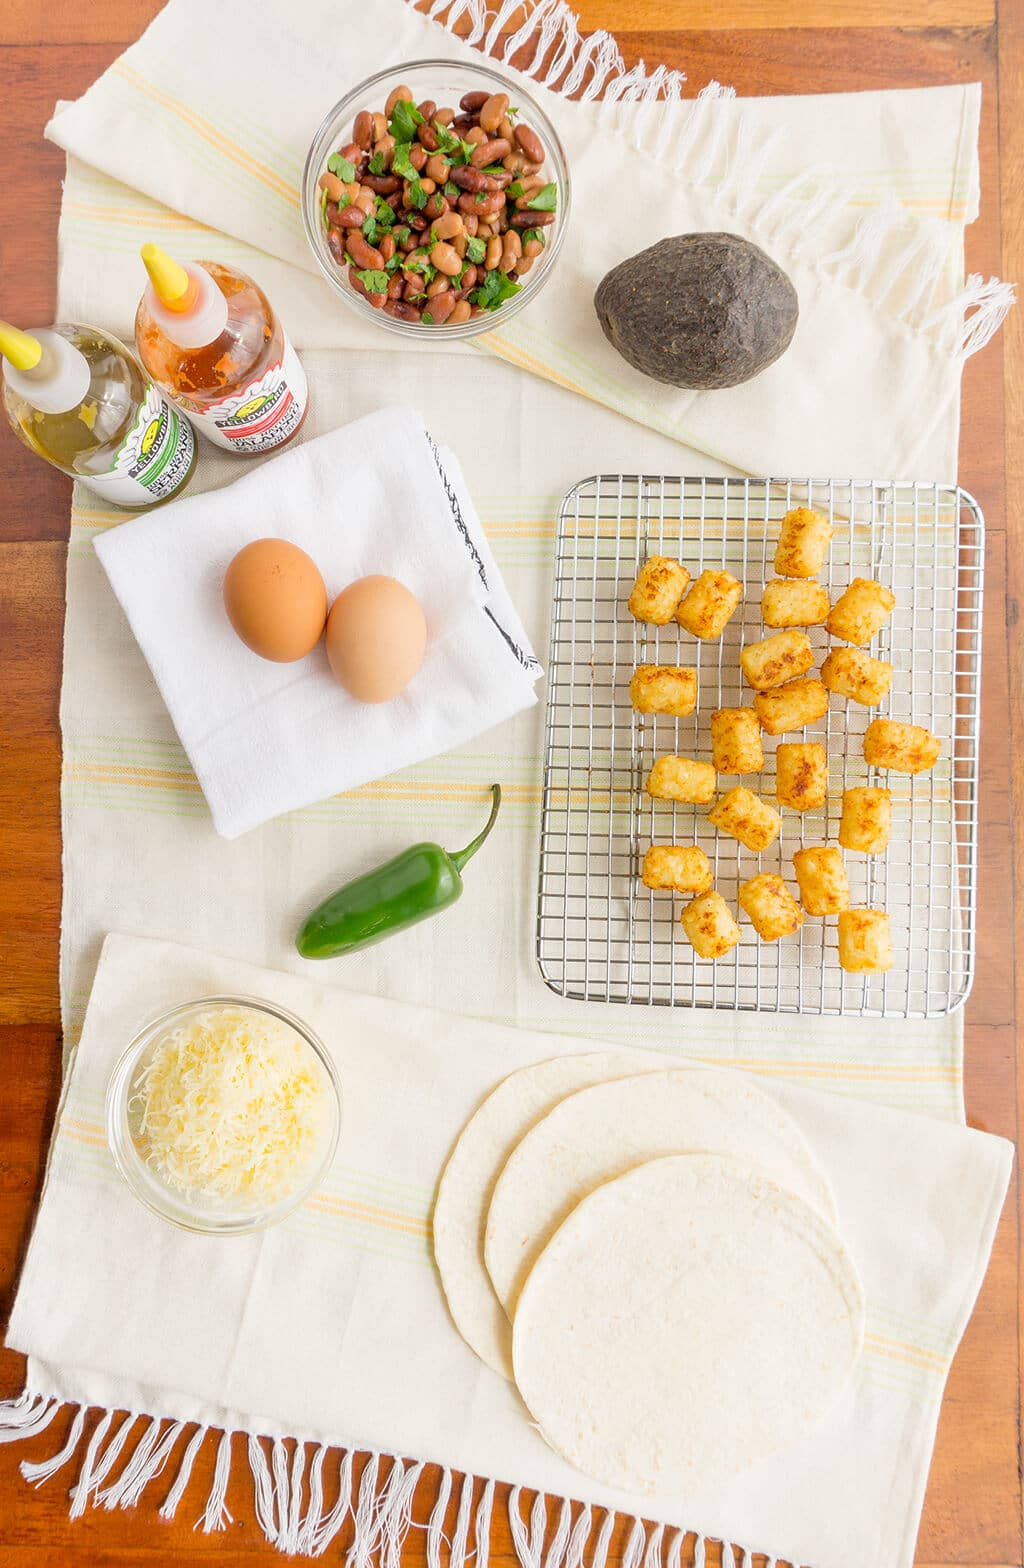 Tater Tot Breakfast Tacos ingredients